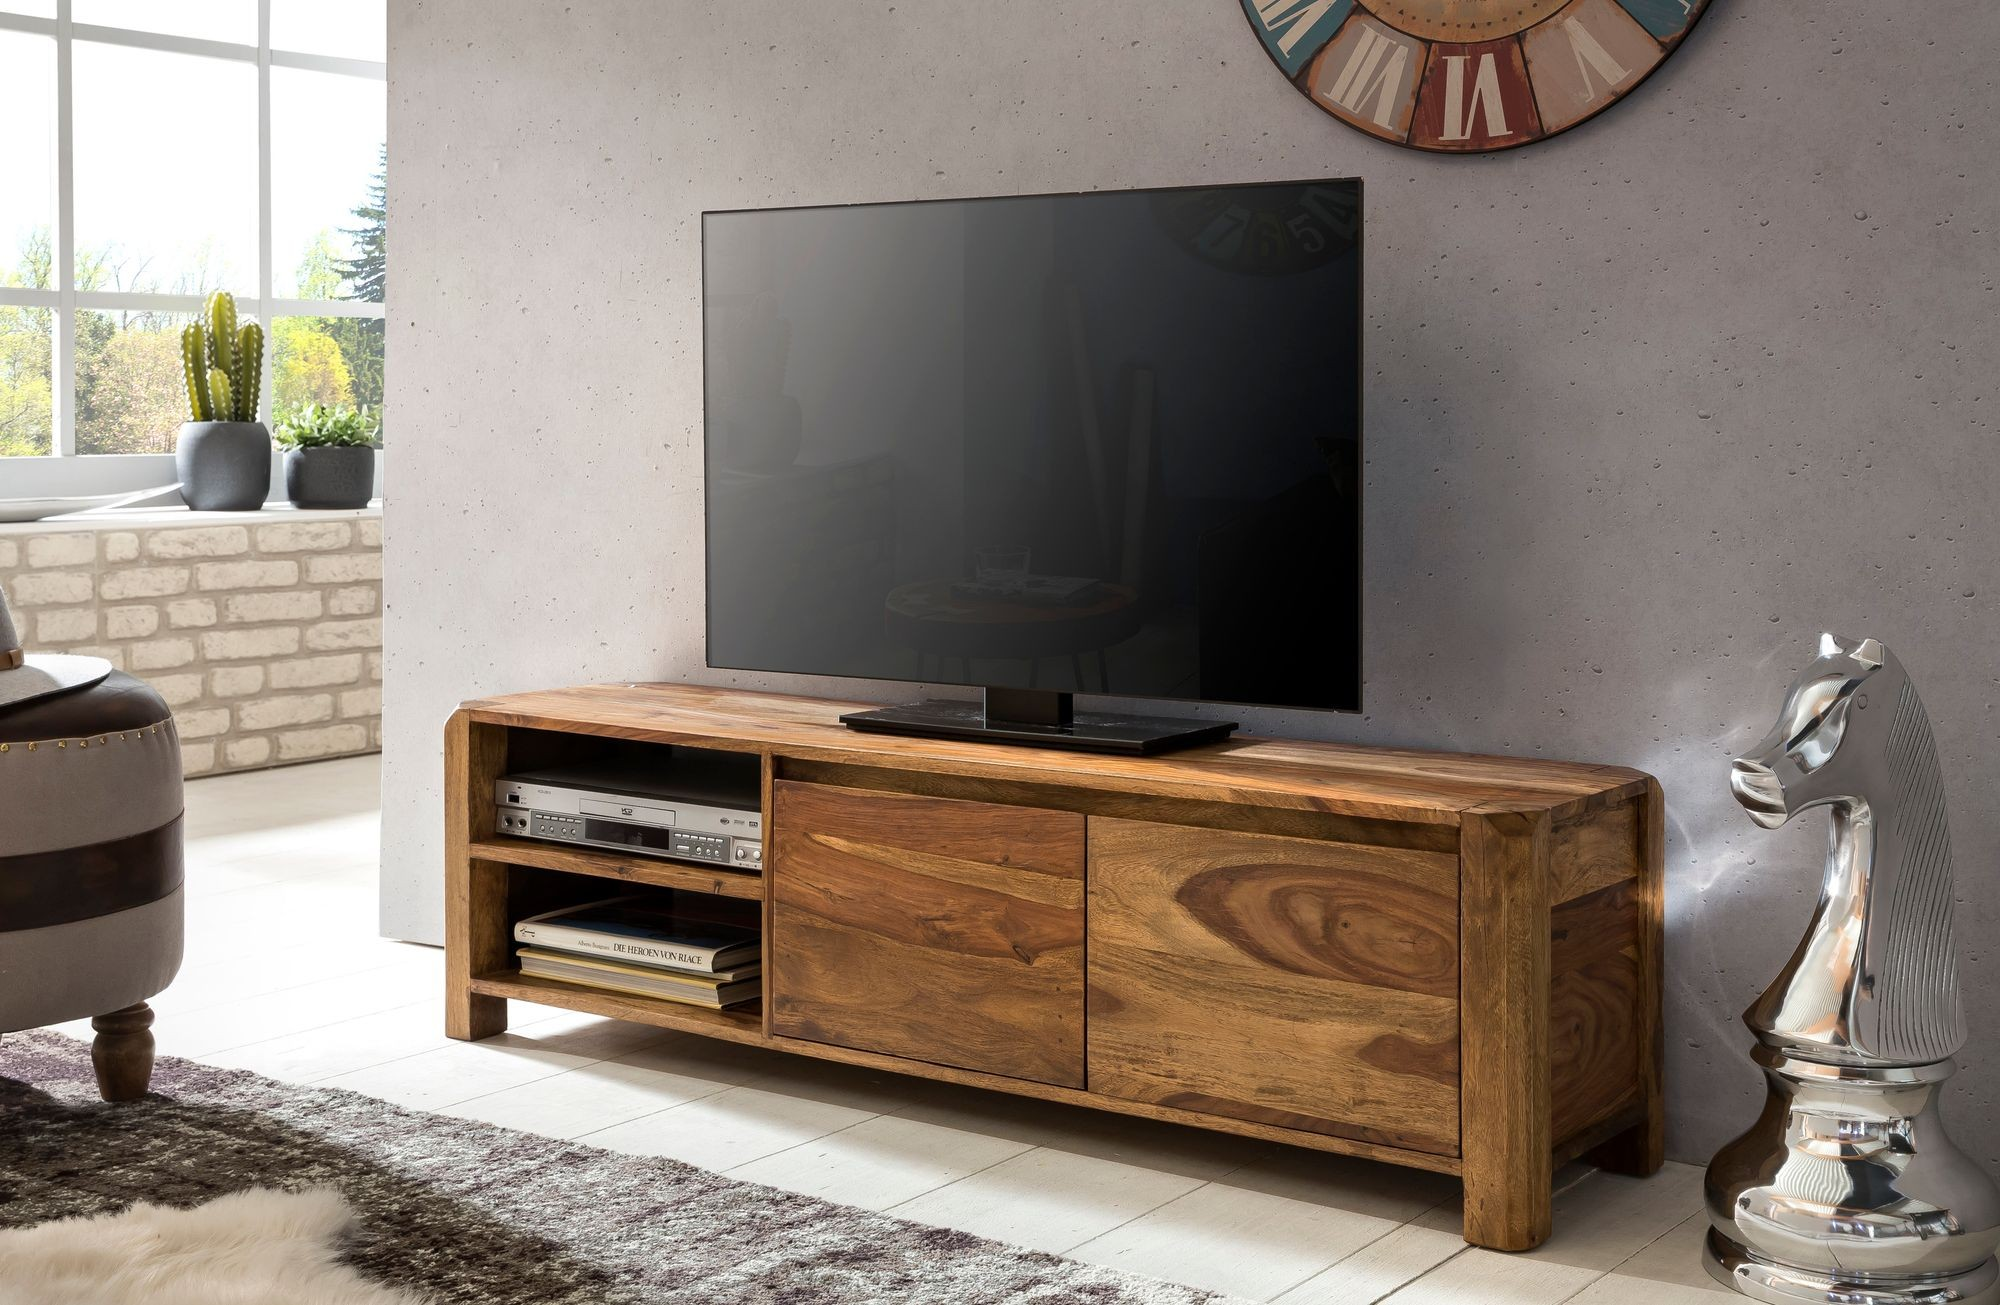 Tv Sideboard Raumteiler Milo Two Lowboard Massivholz Sheesham Kommode 140 Cm Tv